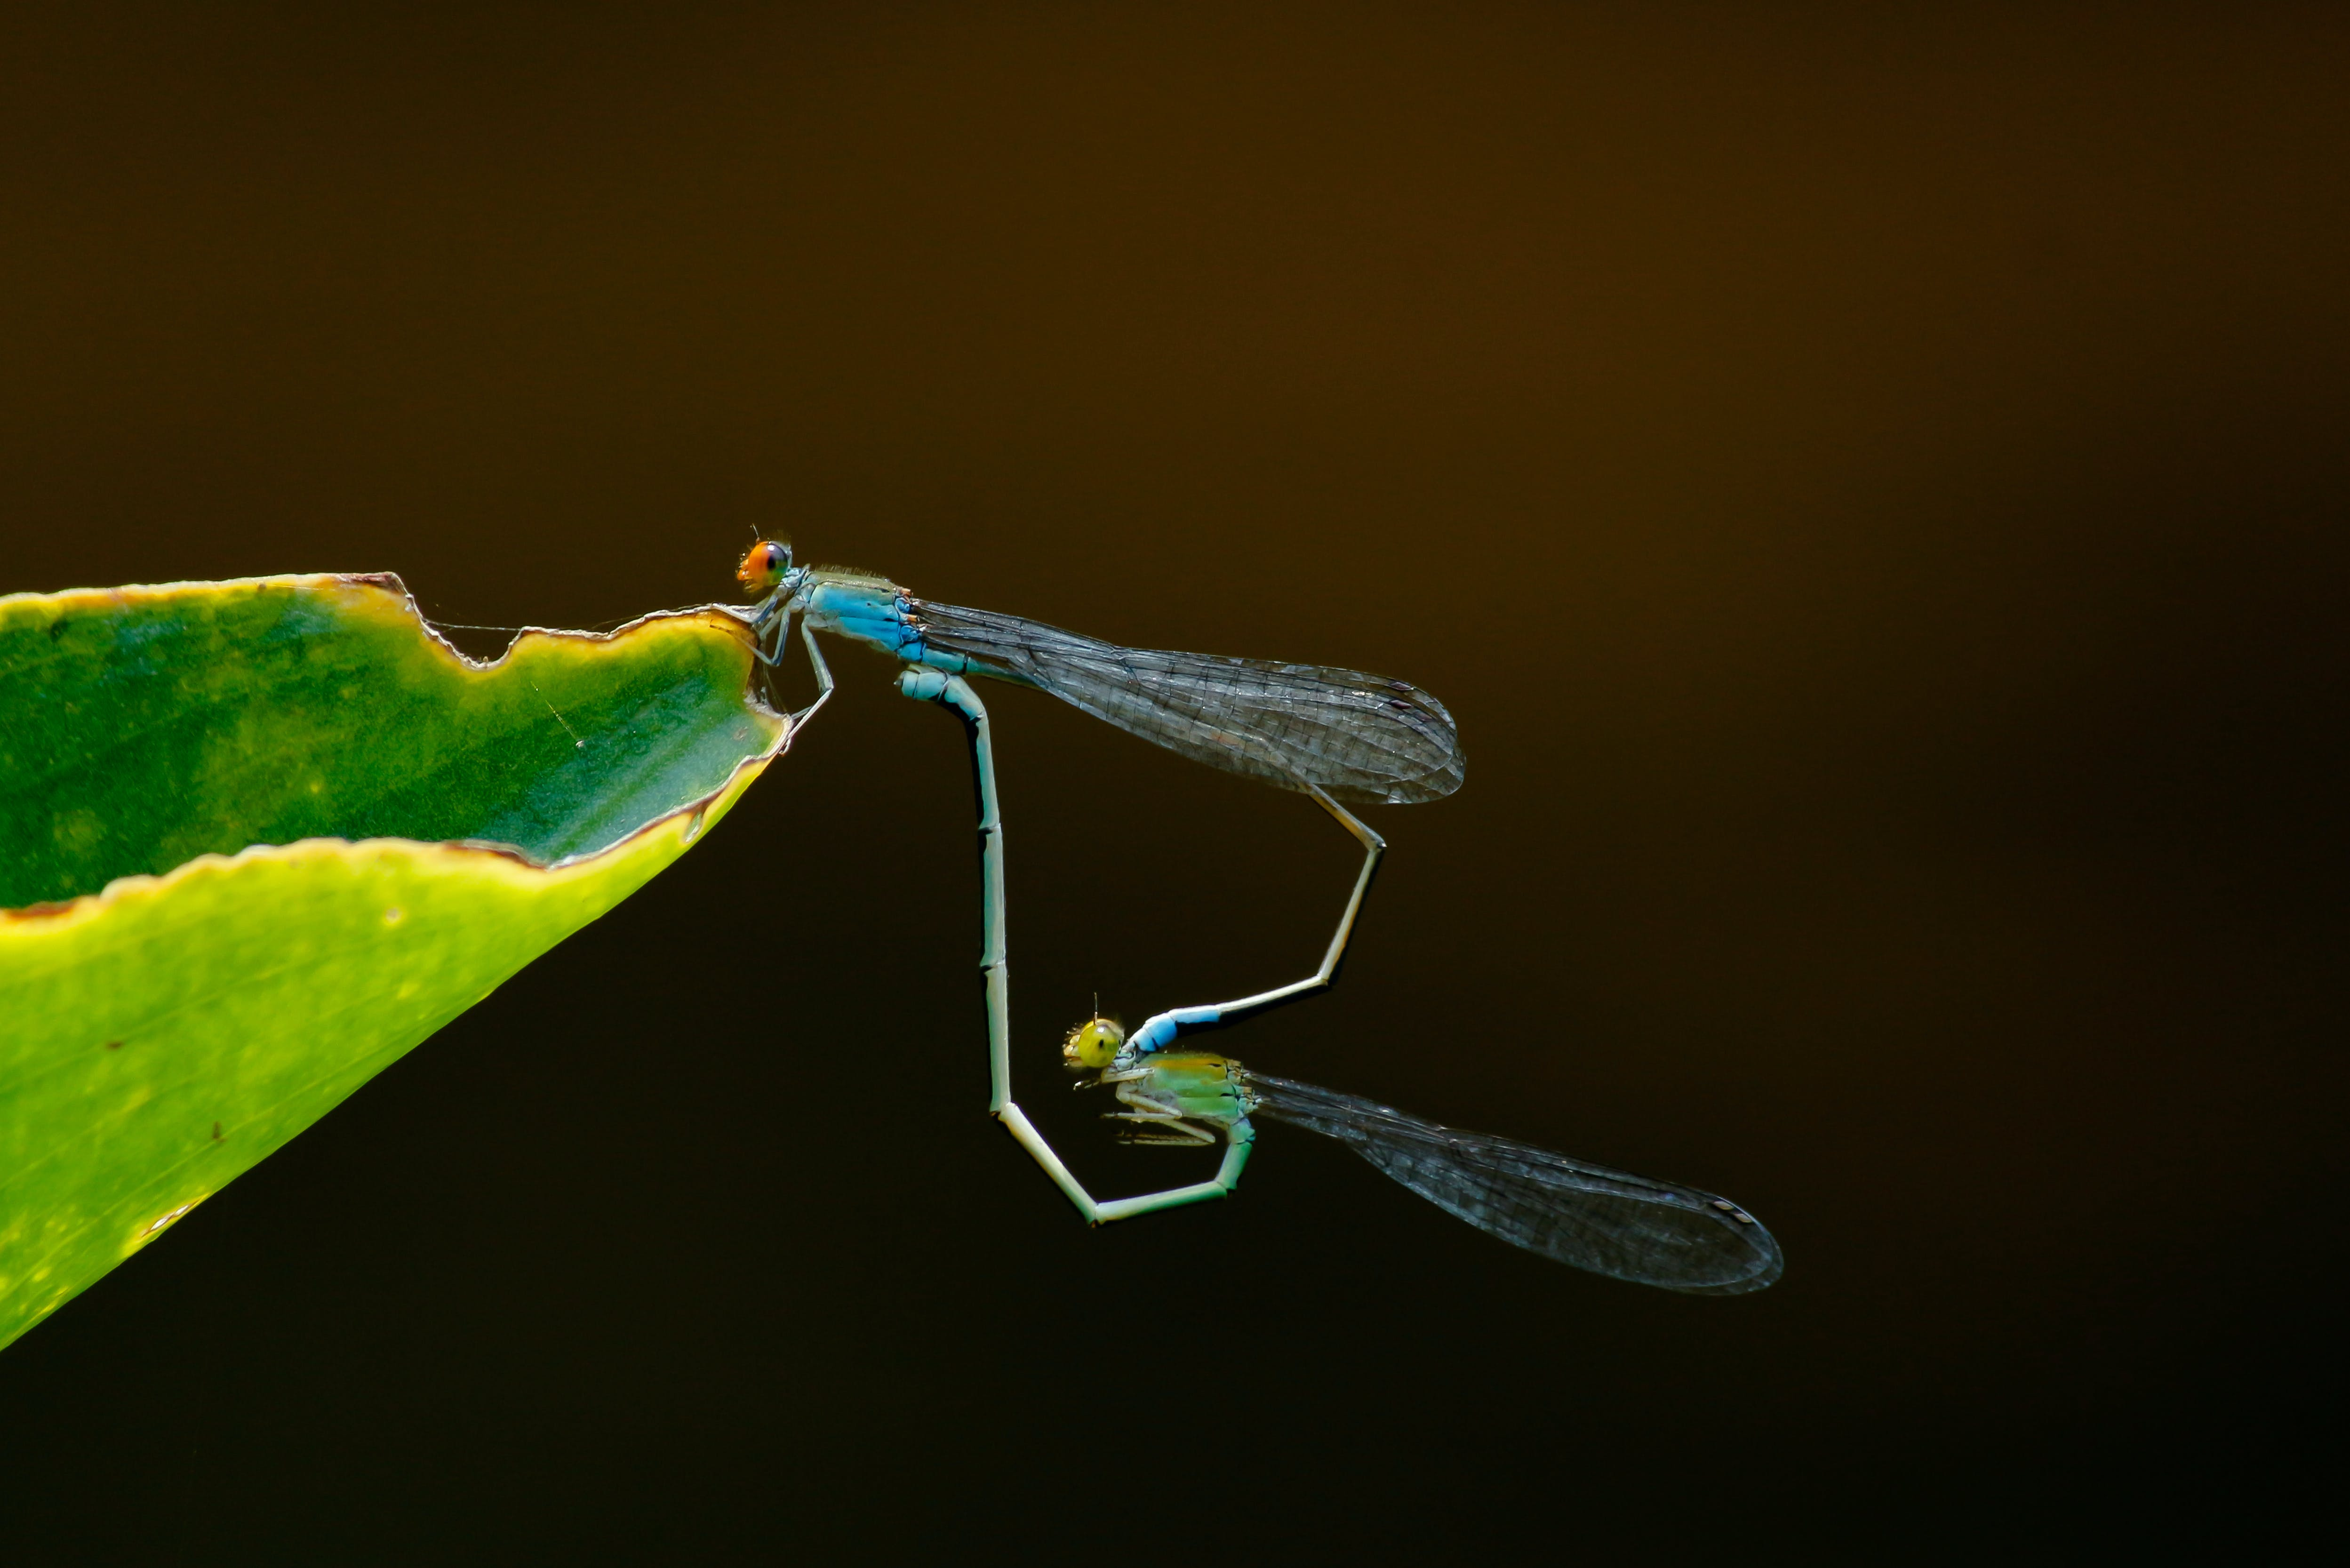 Green and Blue Dragonflies on Green Leaf